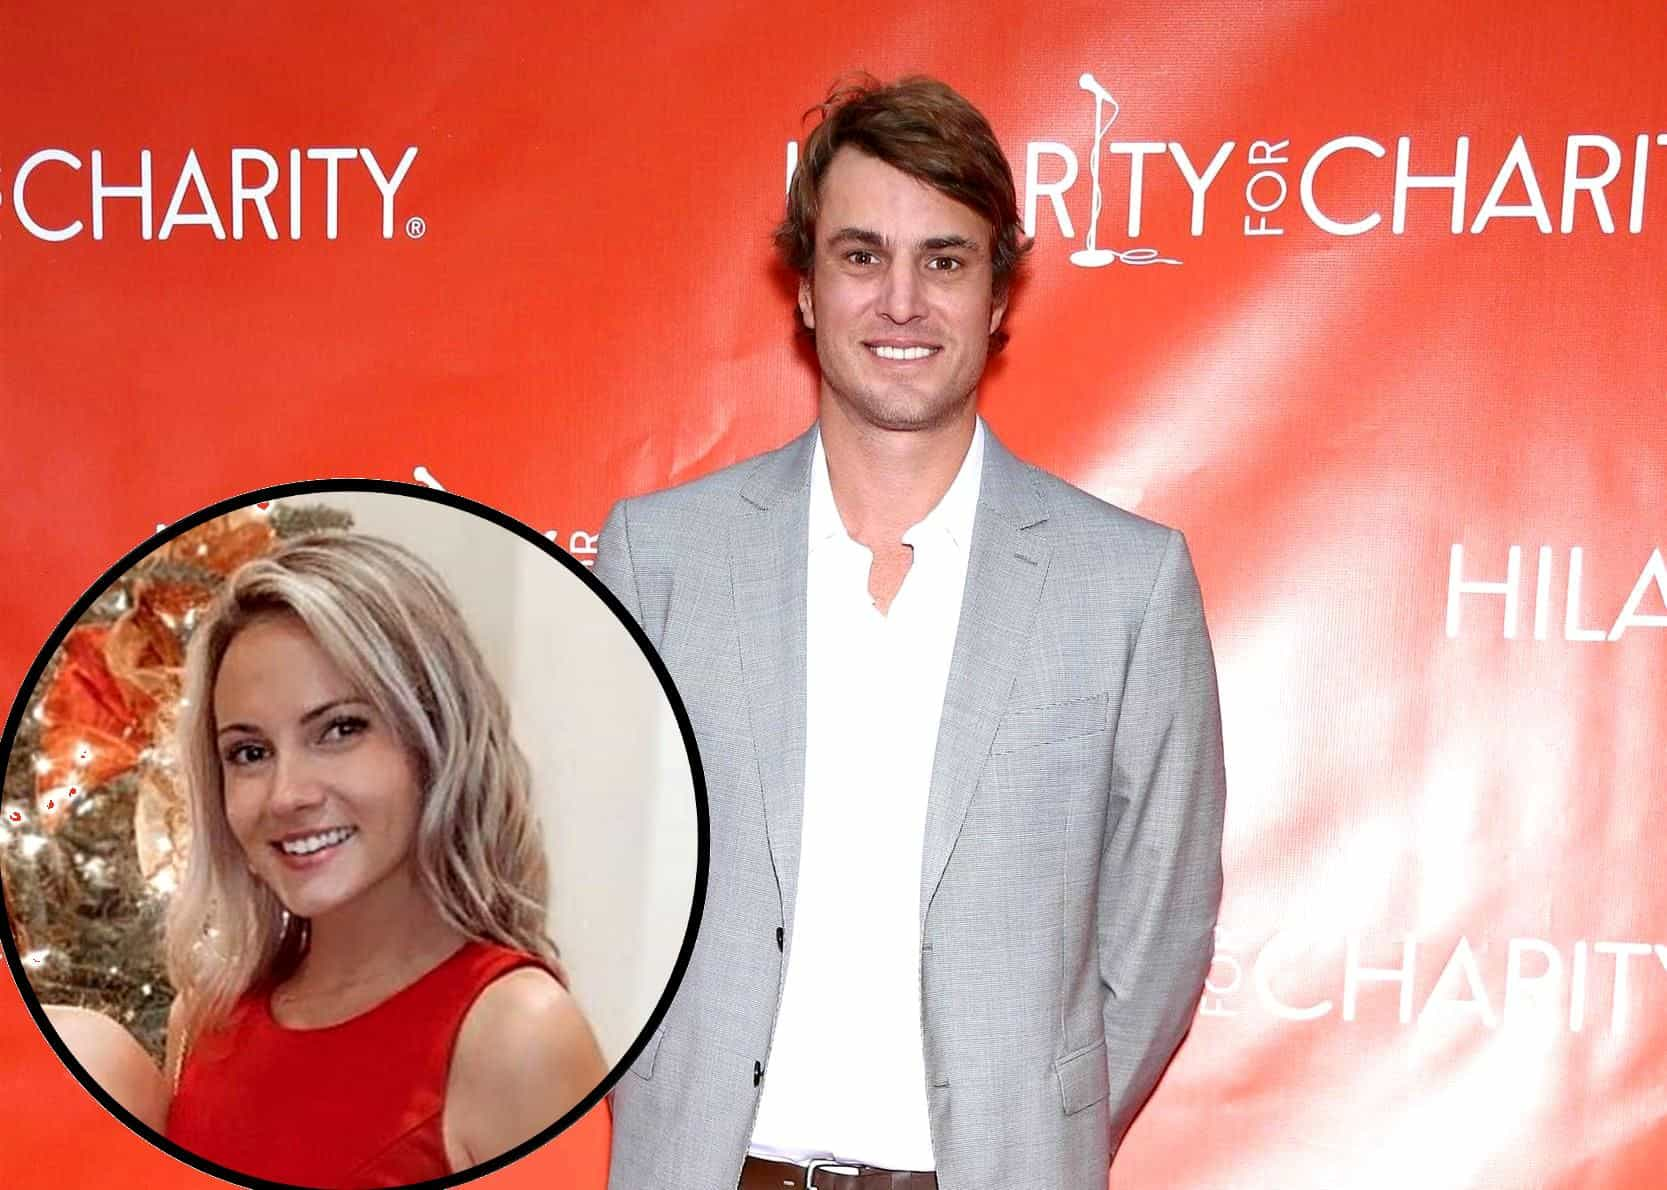 PHOTOS: Southern Charm's Shep Rose Has a New Girlfriend! Meet Taylor Ann Green and See Photo of Them Together! Plus Madison Responds to Their Instagram Debut